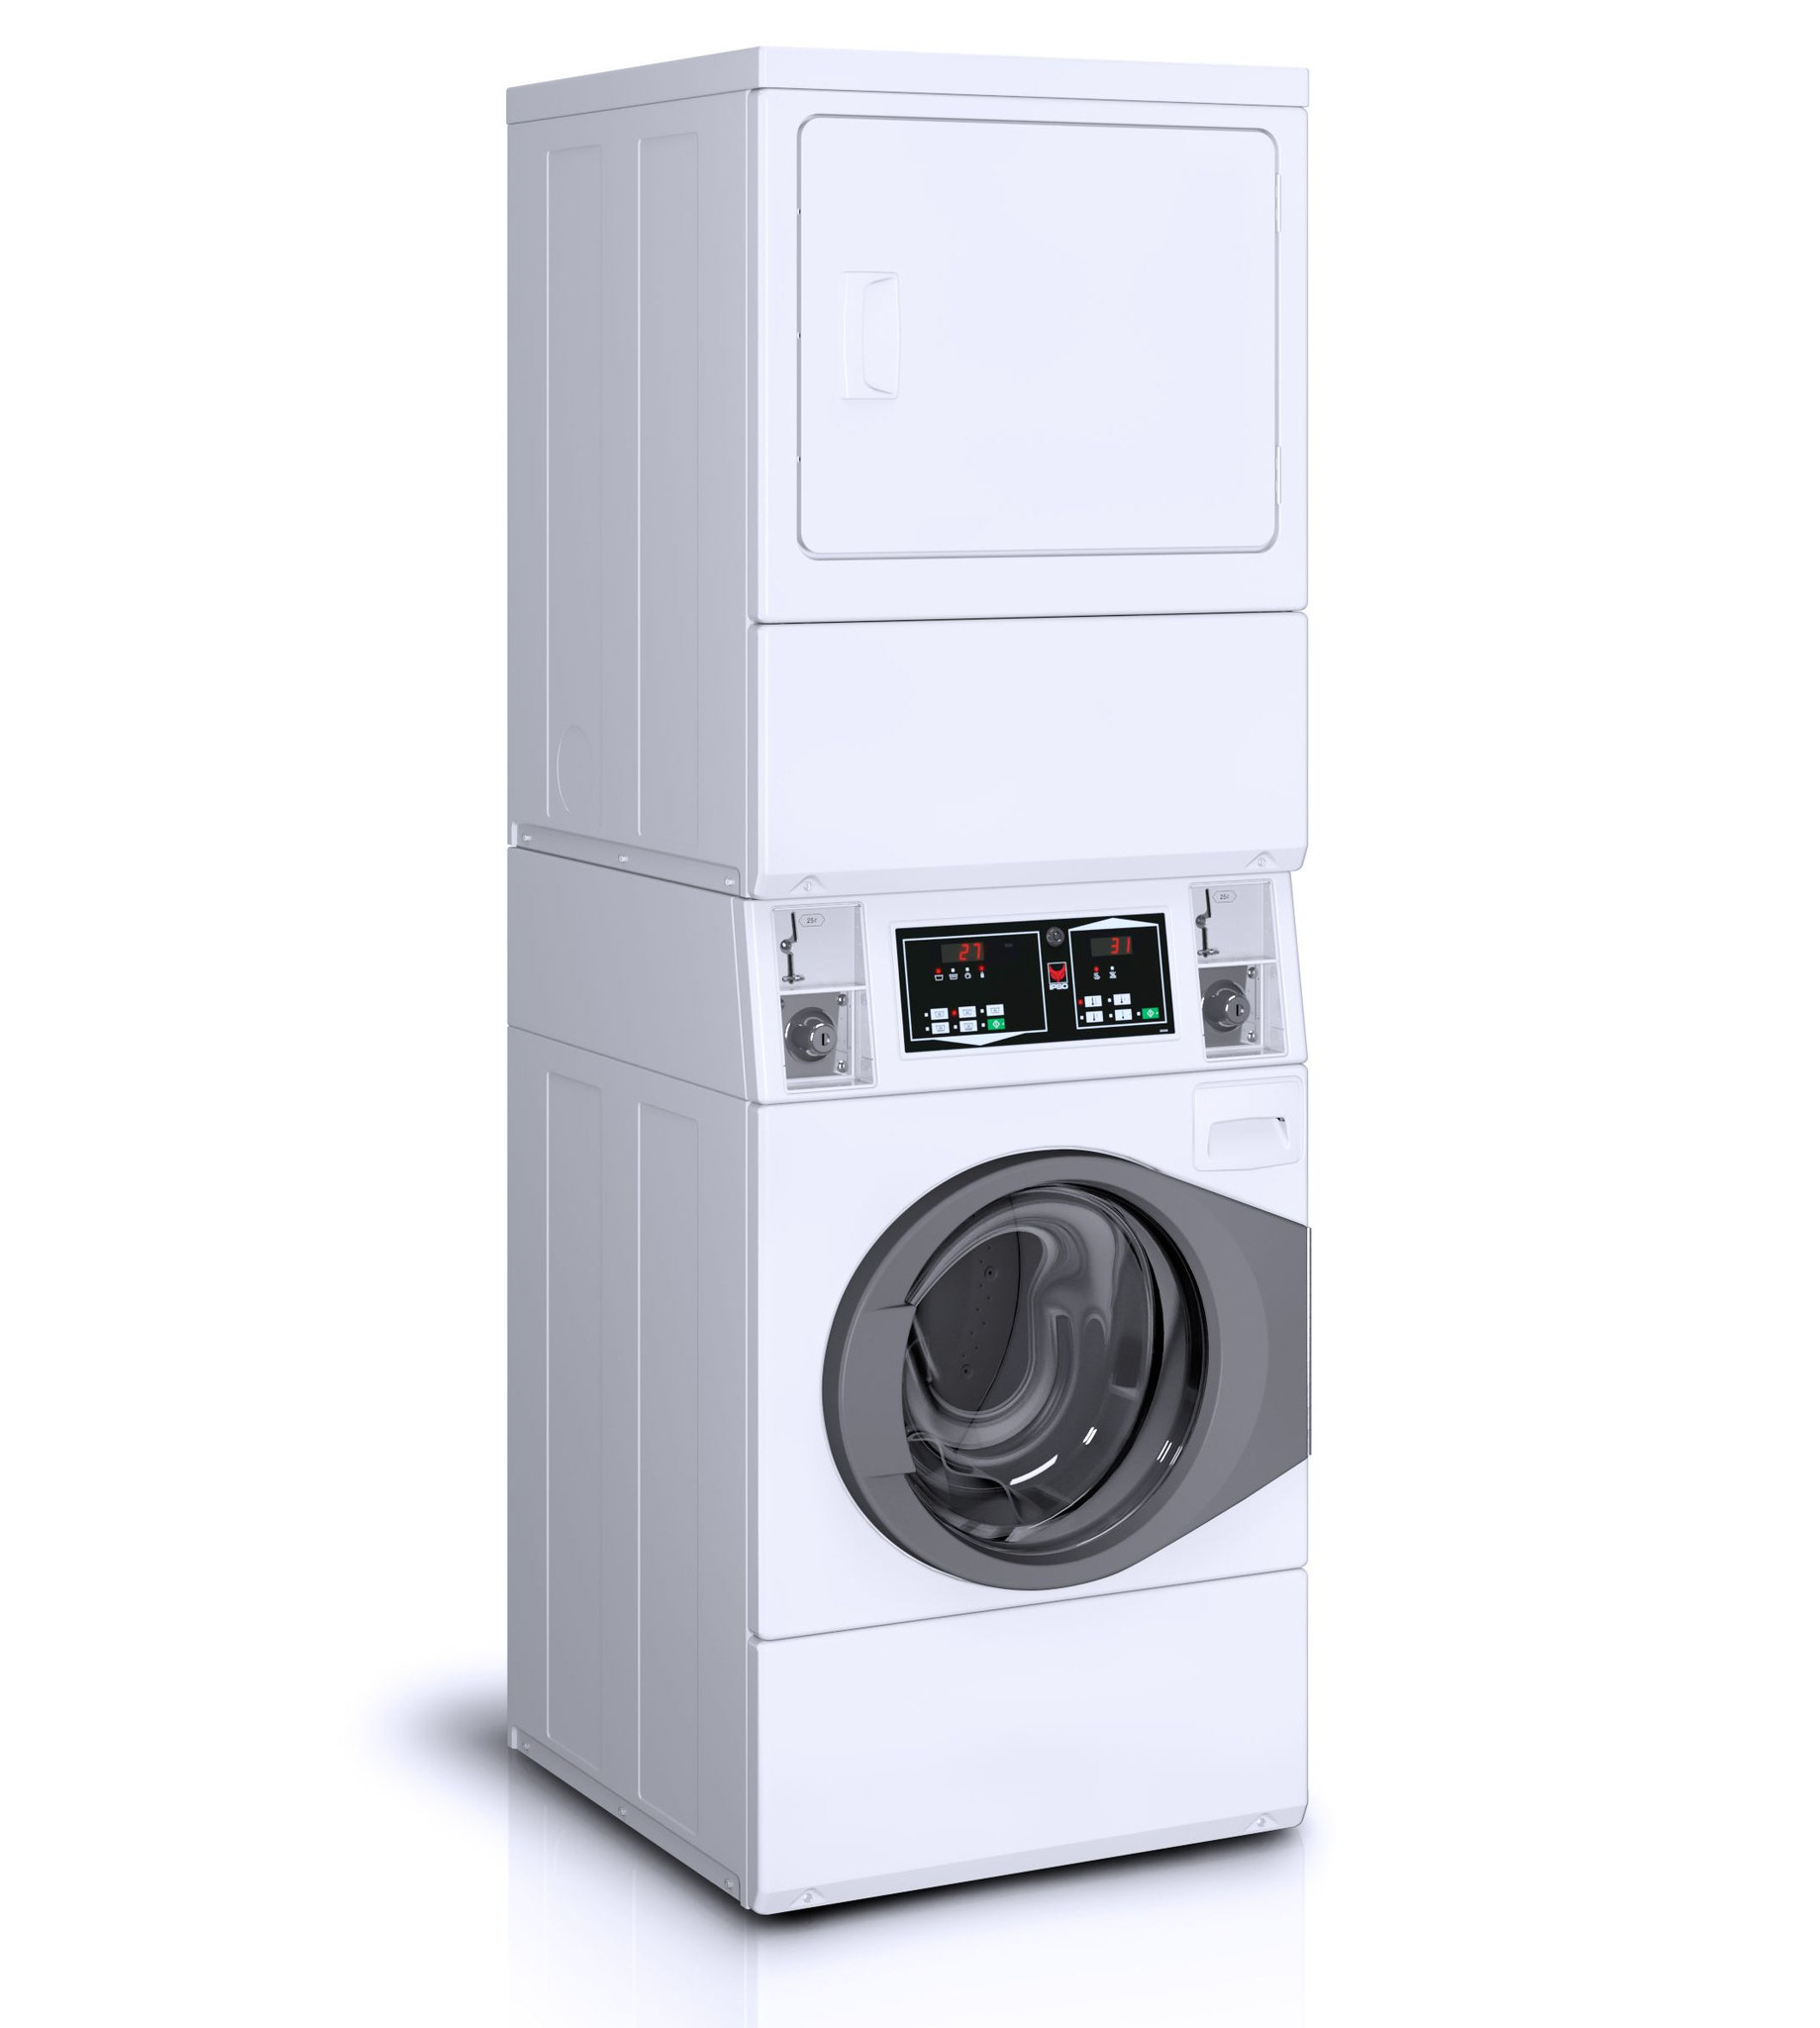 Apartment Size Washer and Dryer Stackable - HomesFeed